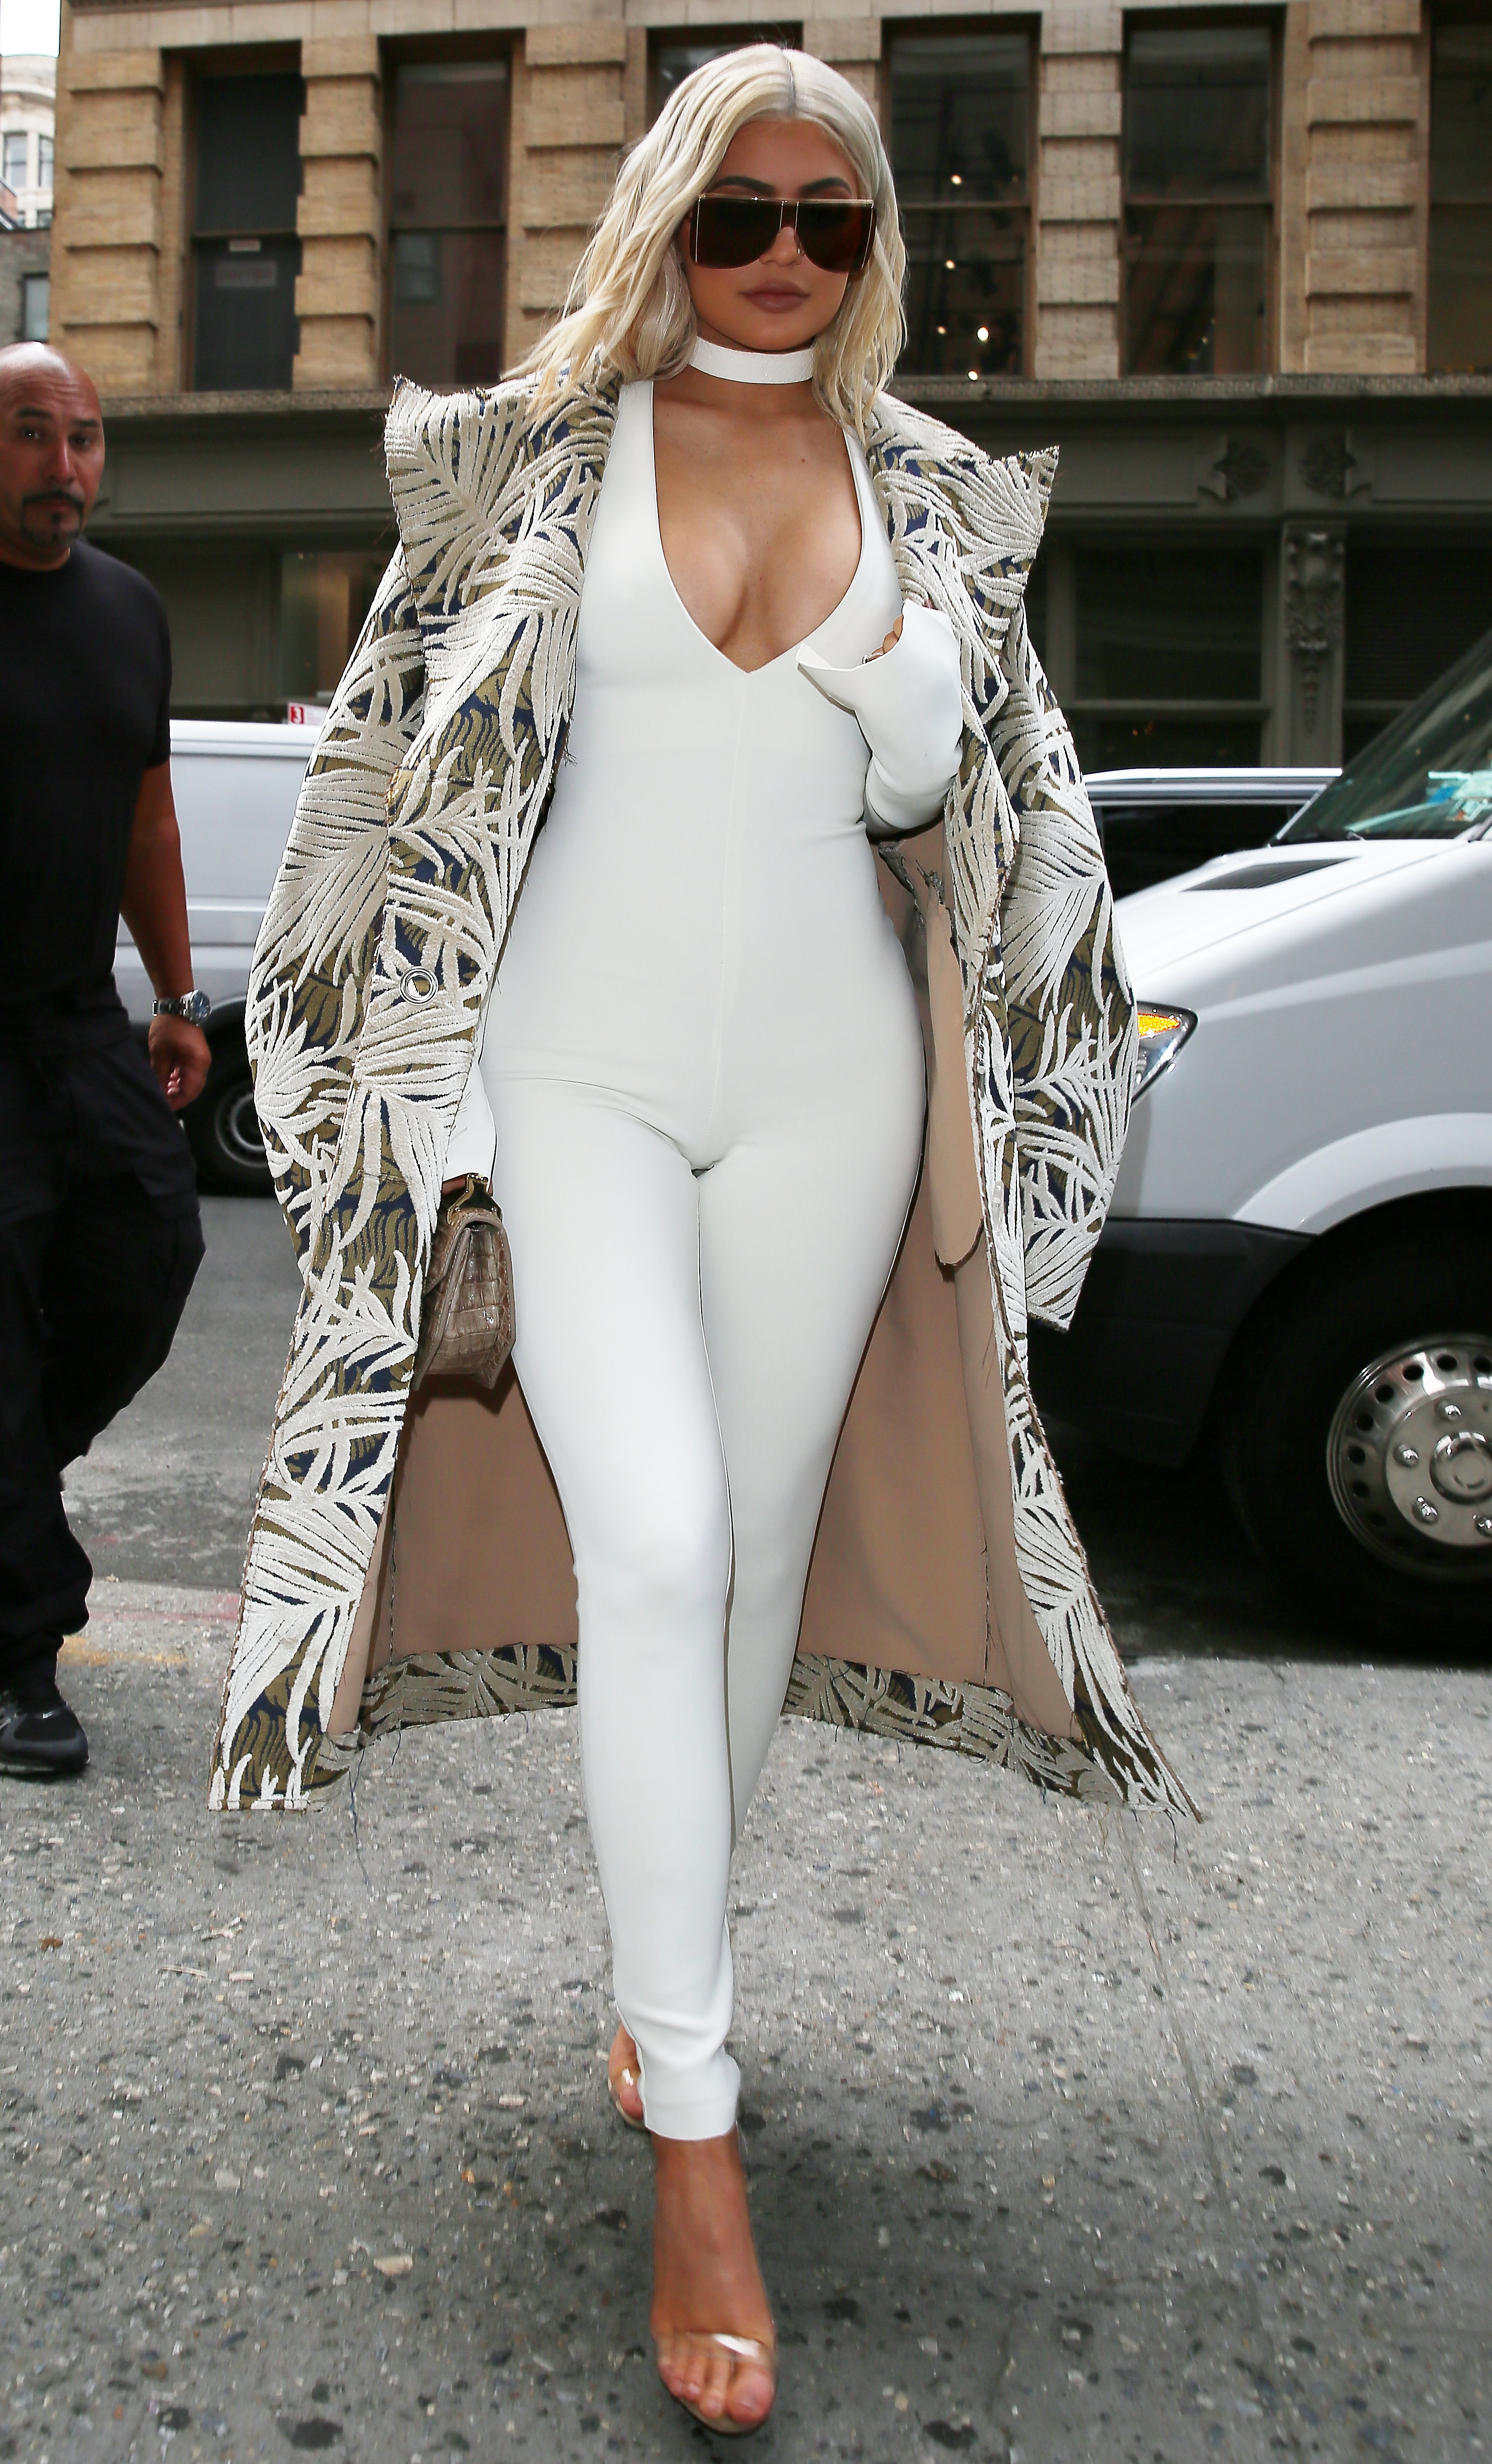 Pics Kylie Jenner S Hot Jumpsuit Pics At The New York